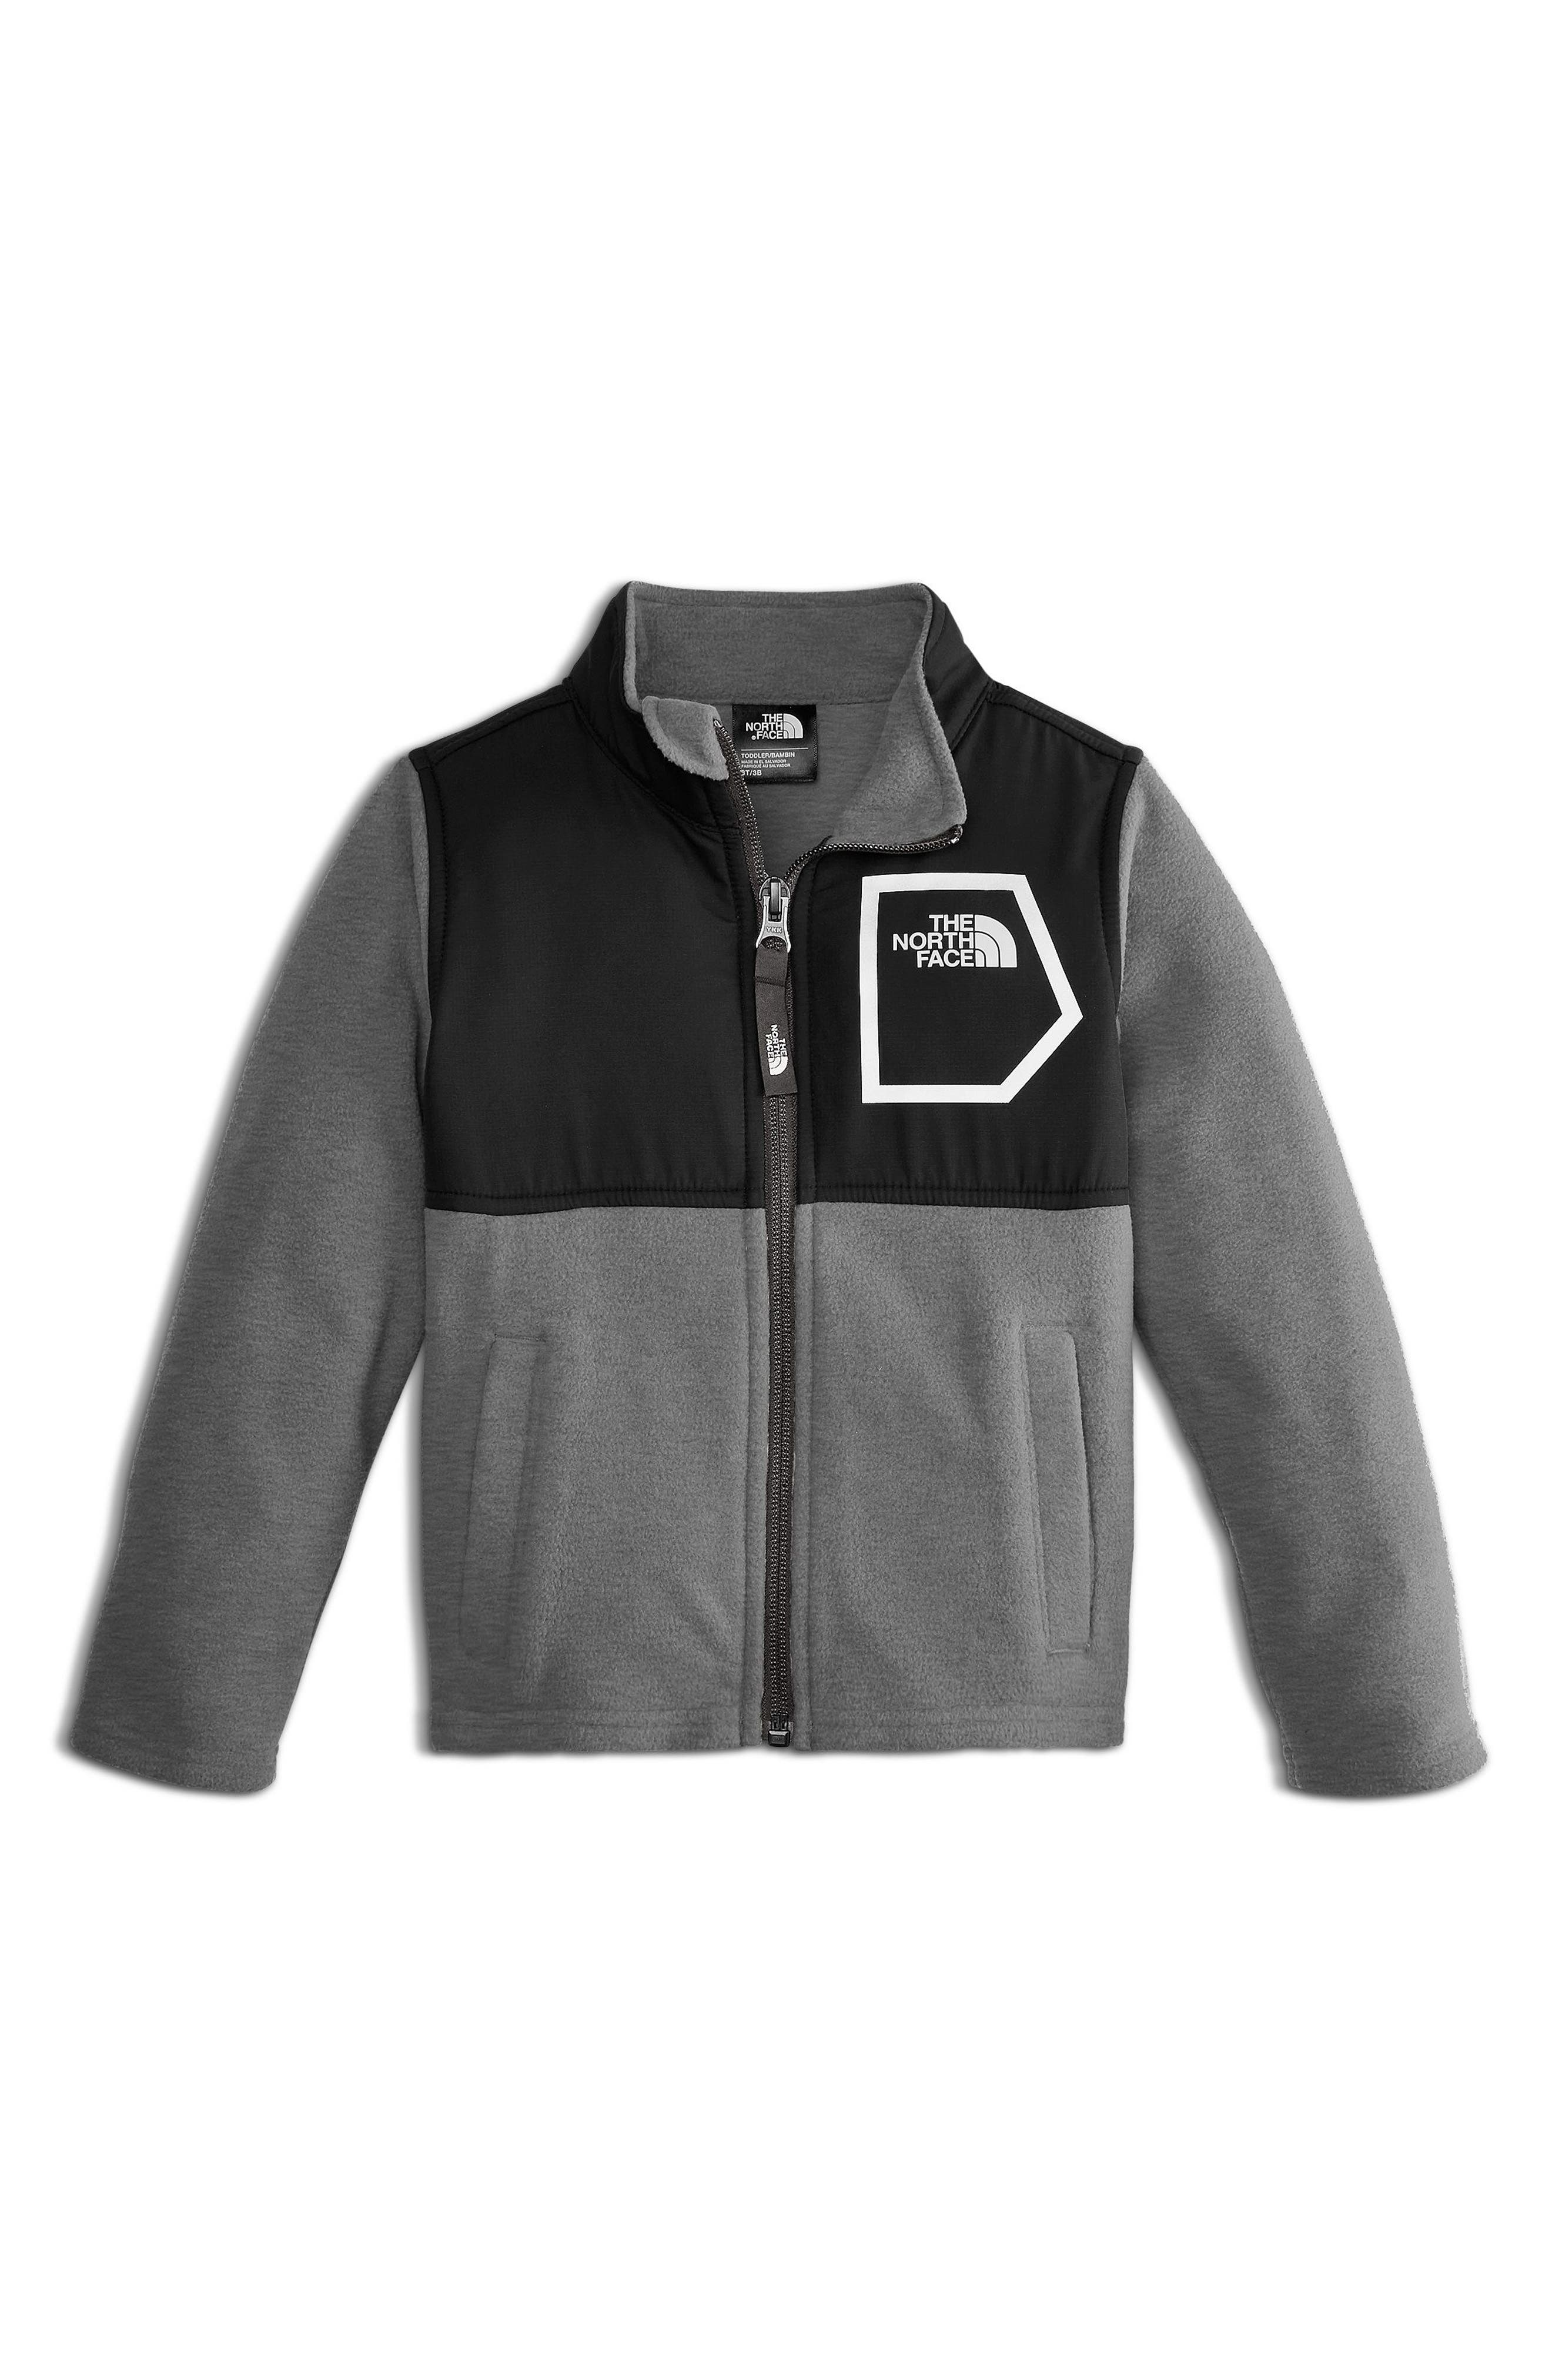 Glacier Track Jacket,                         Main,                         color, 030